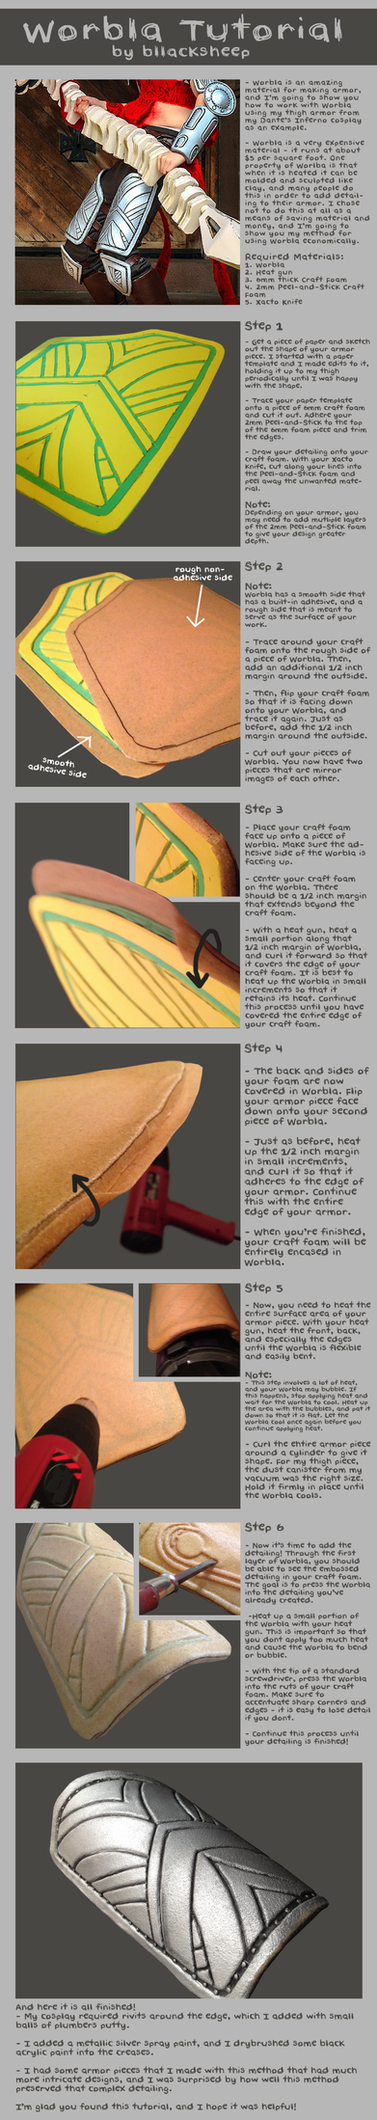 Worbla Tutorial by Bllacksheep